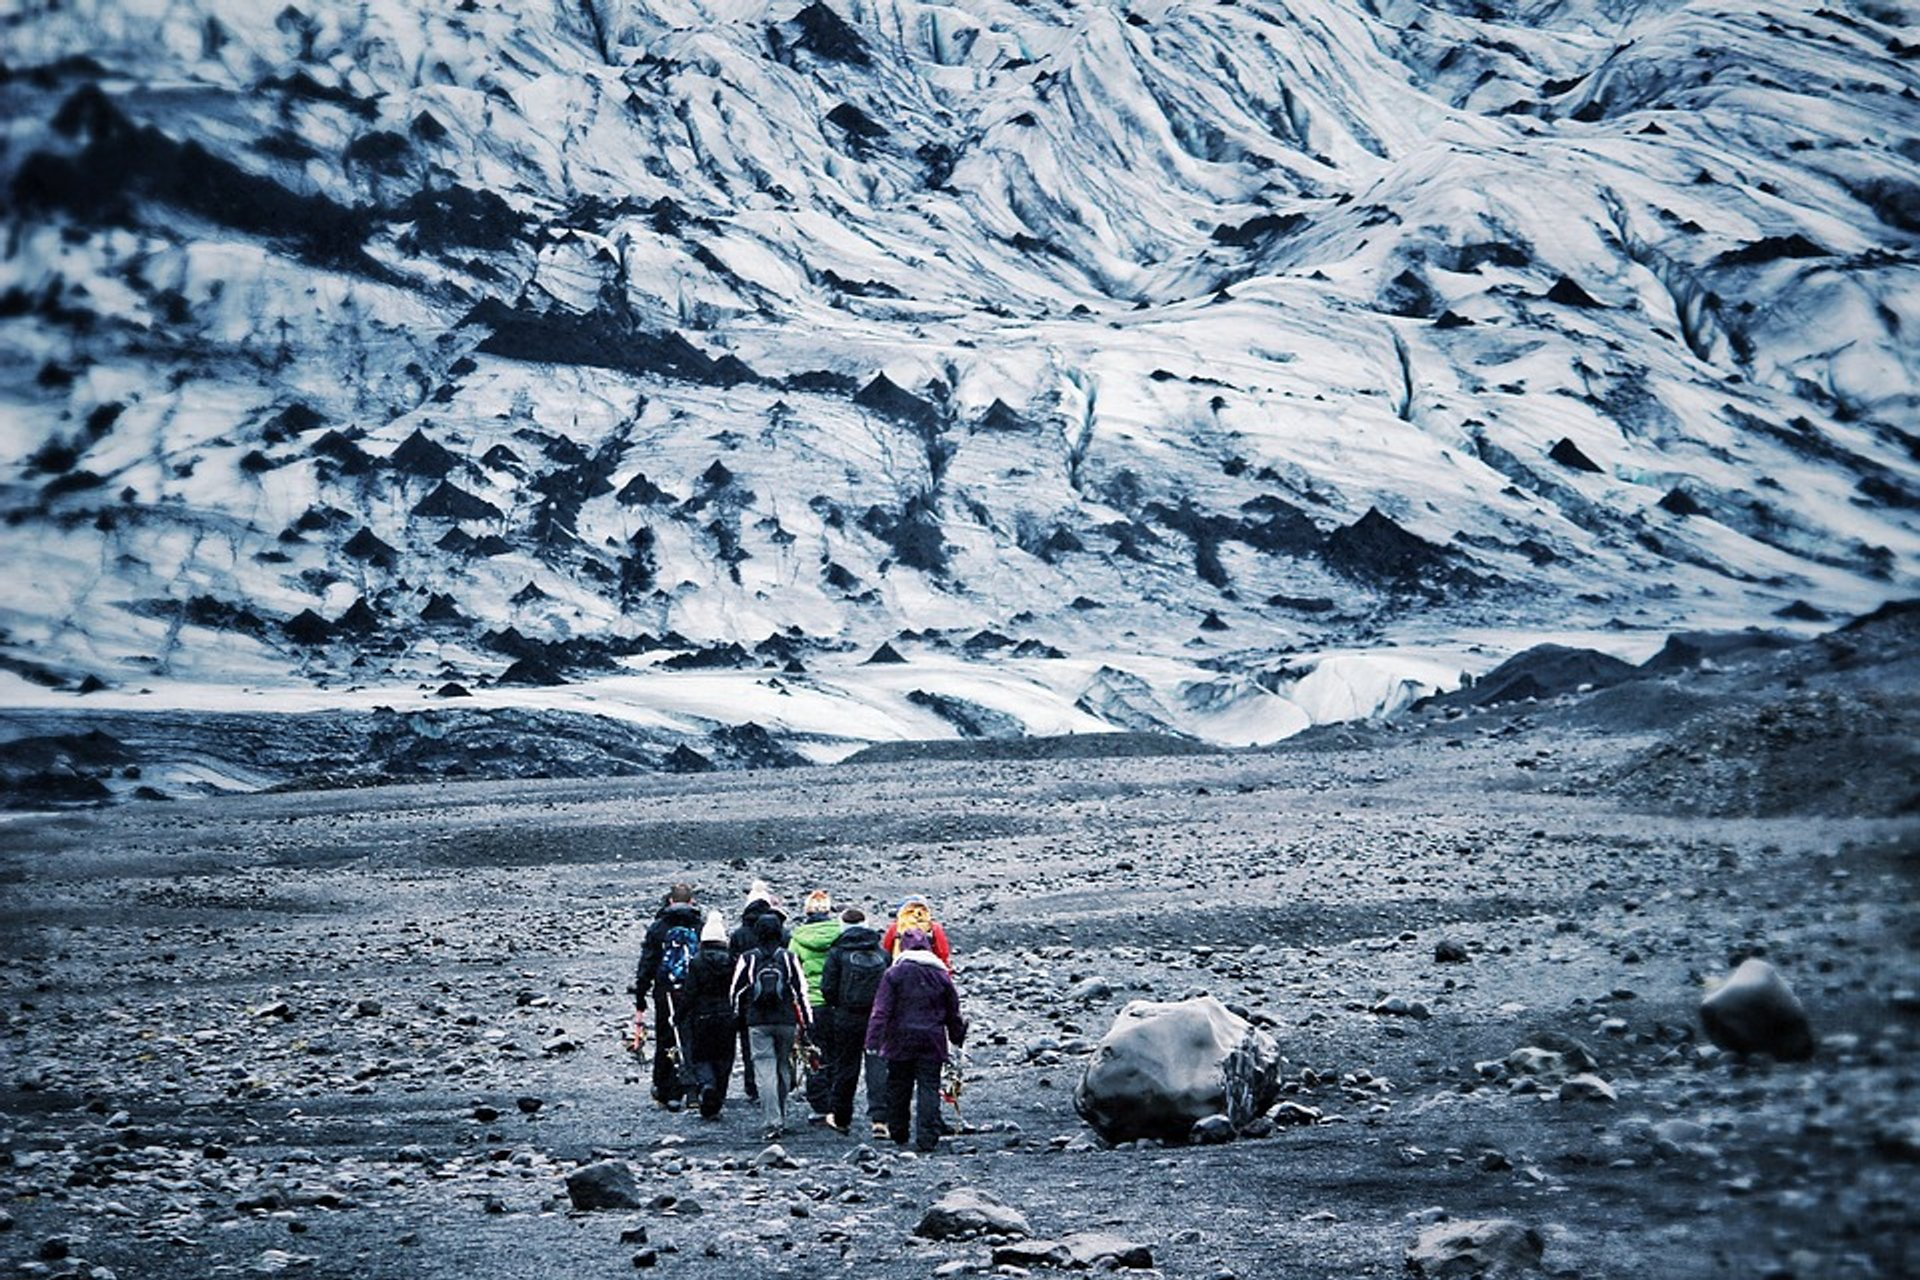 Glacier Walking in Iceland - Best Season 2020